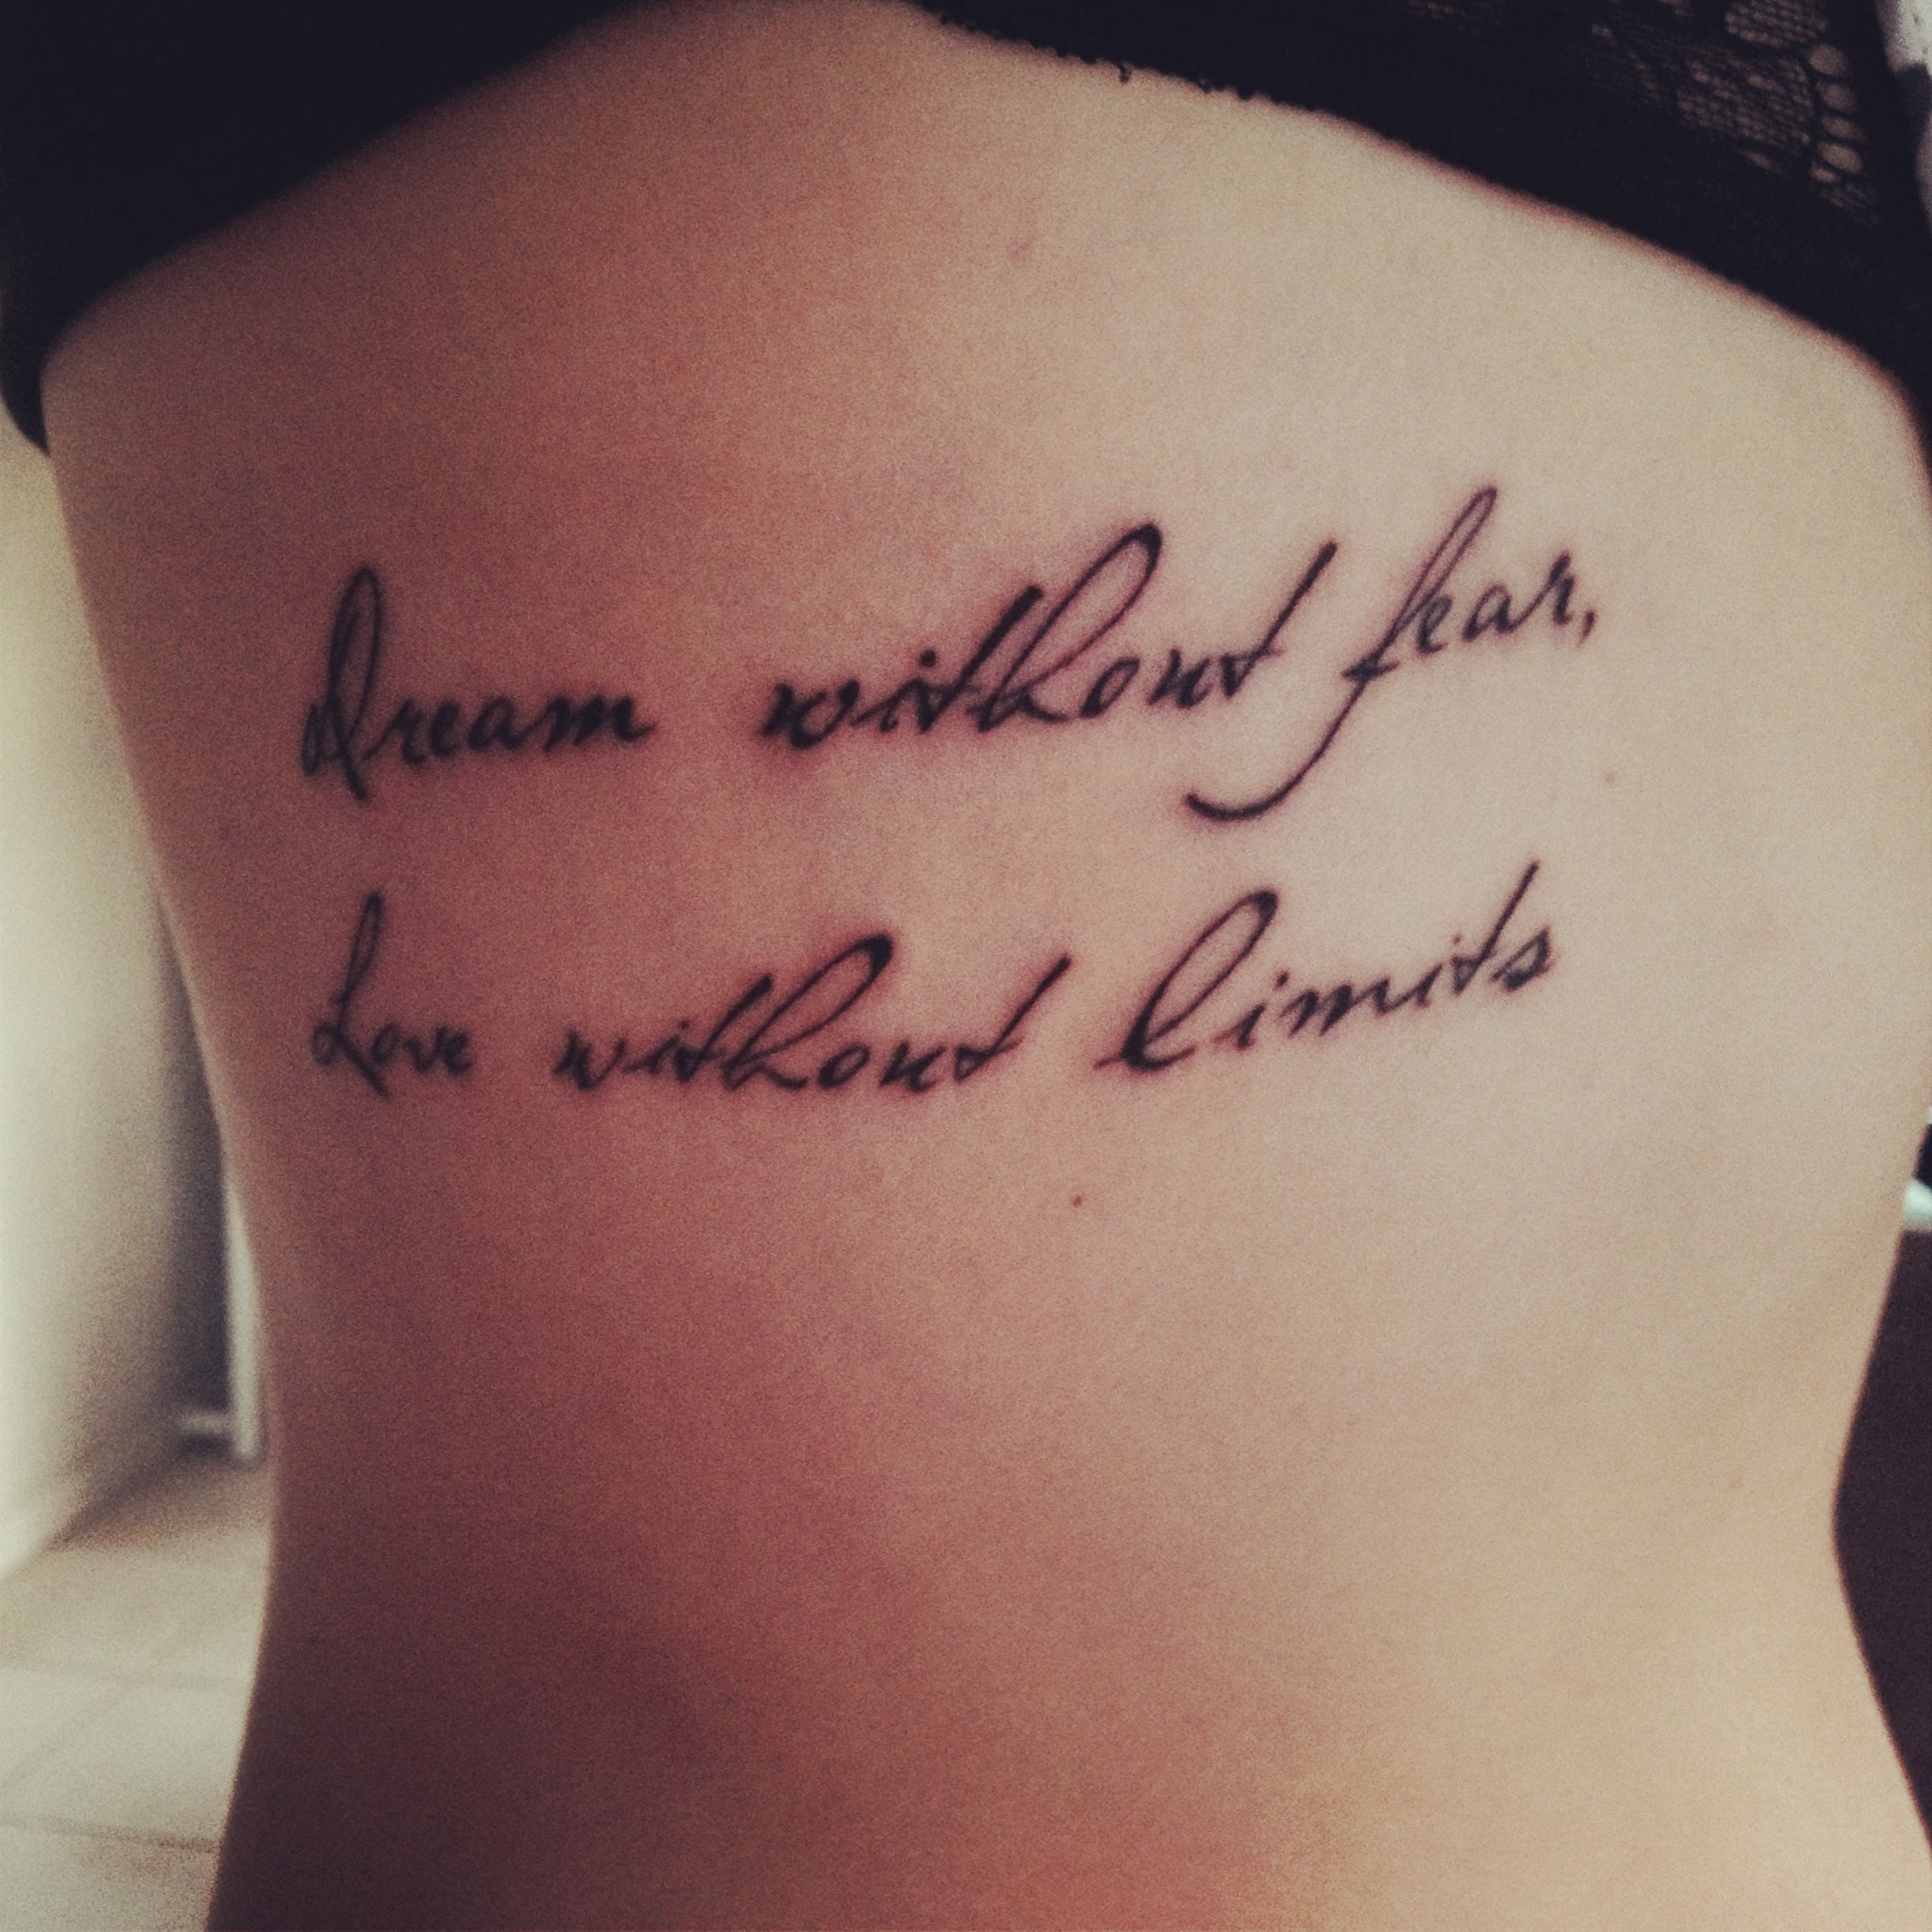 Tattoo Quotes Dreams: Dream Without Fear, Love Without Limits